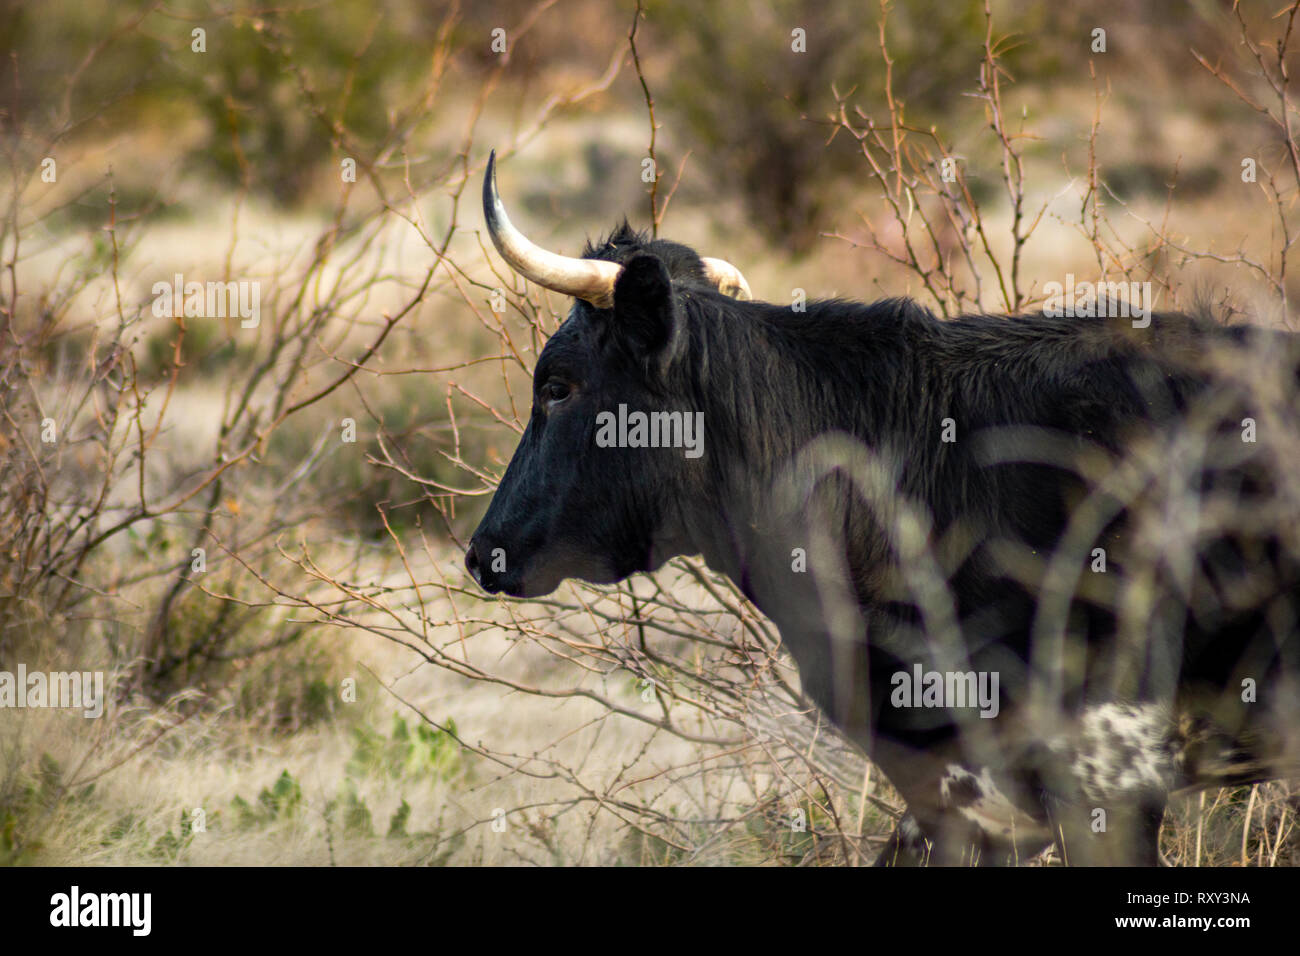 Cow with crooked horns standing in desert brush. - Stock Image